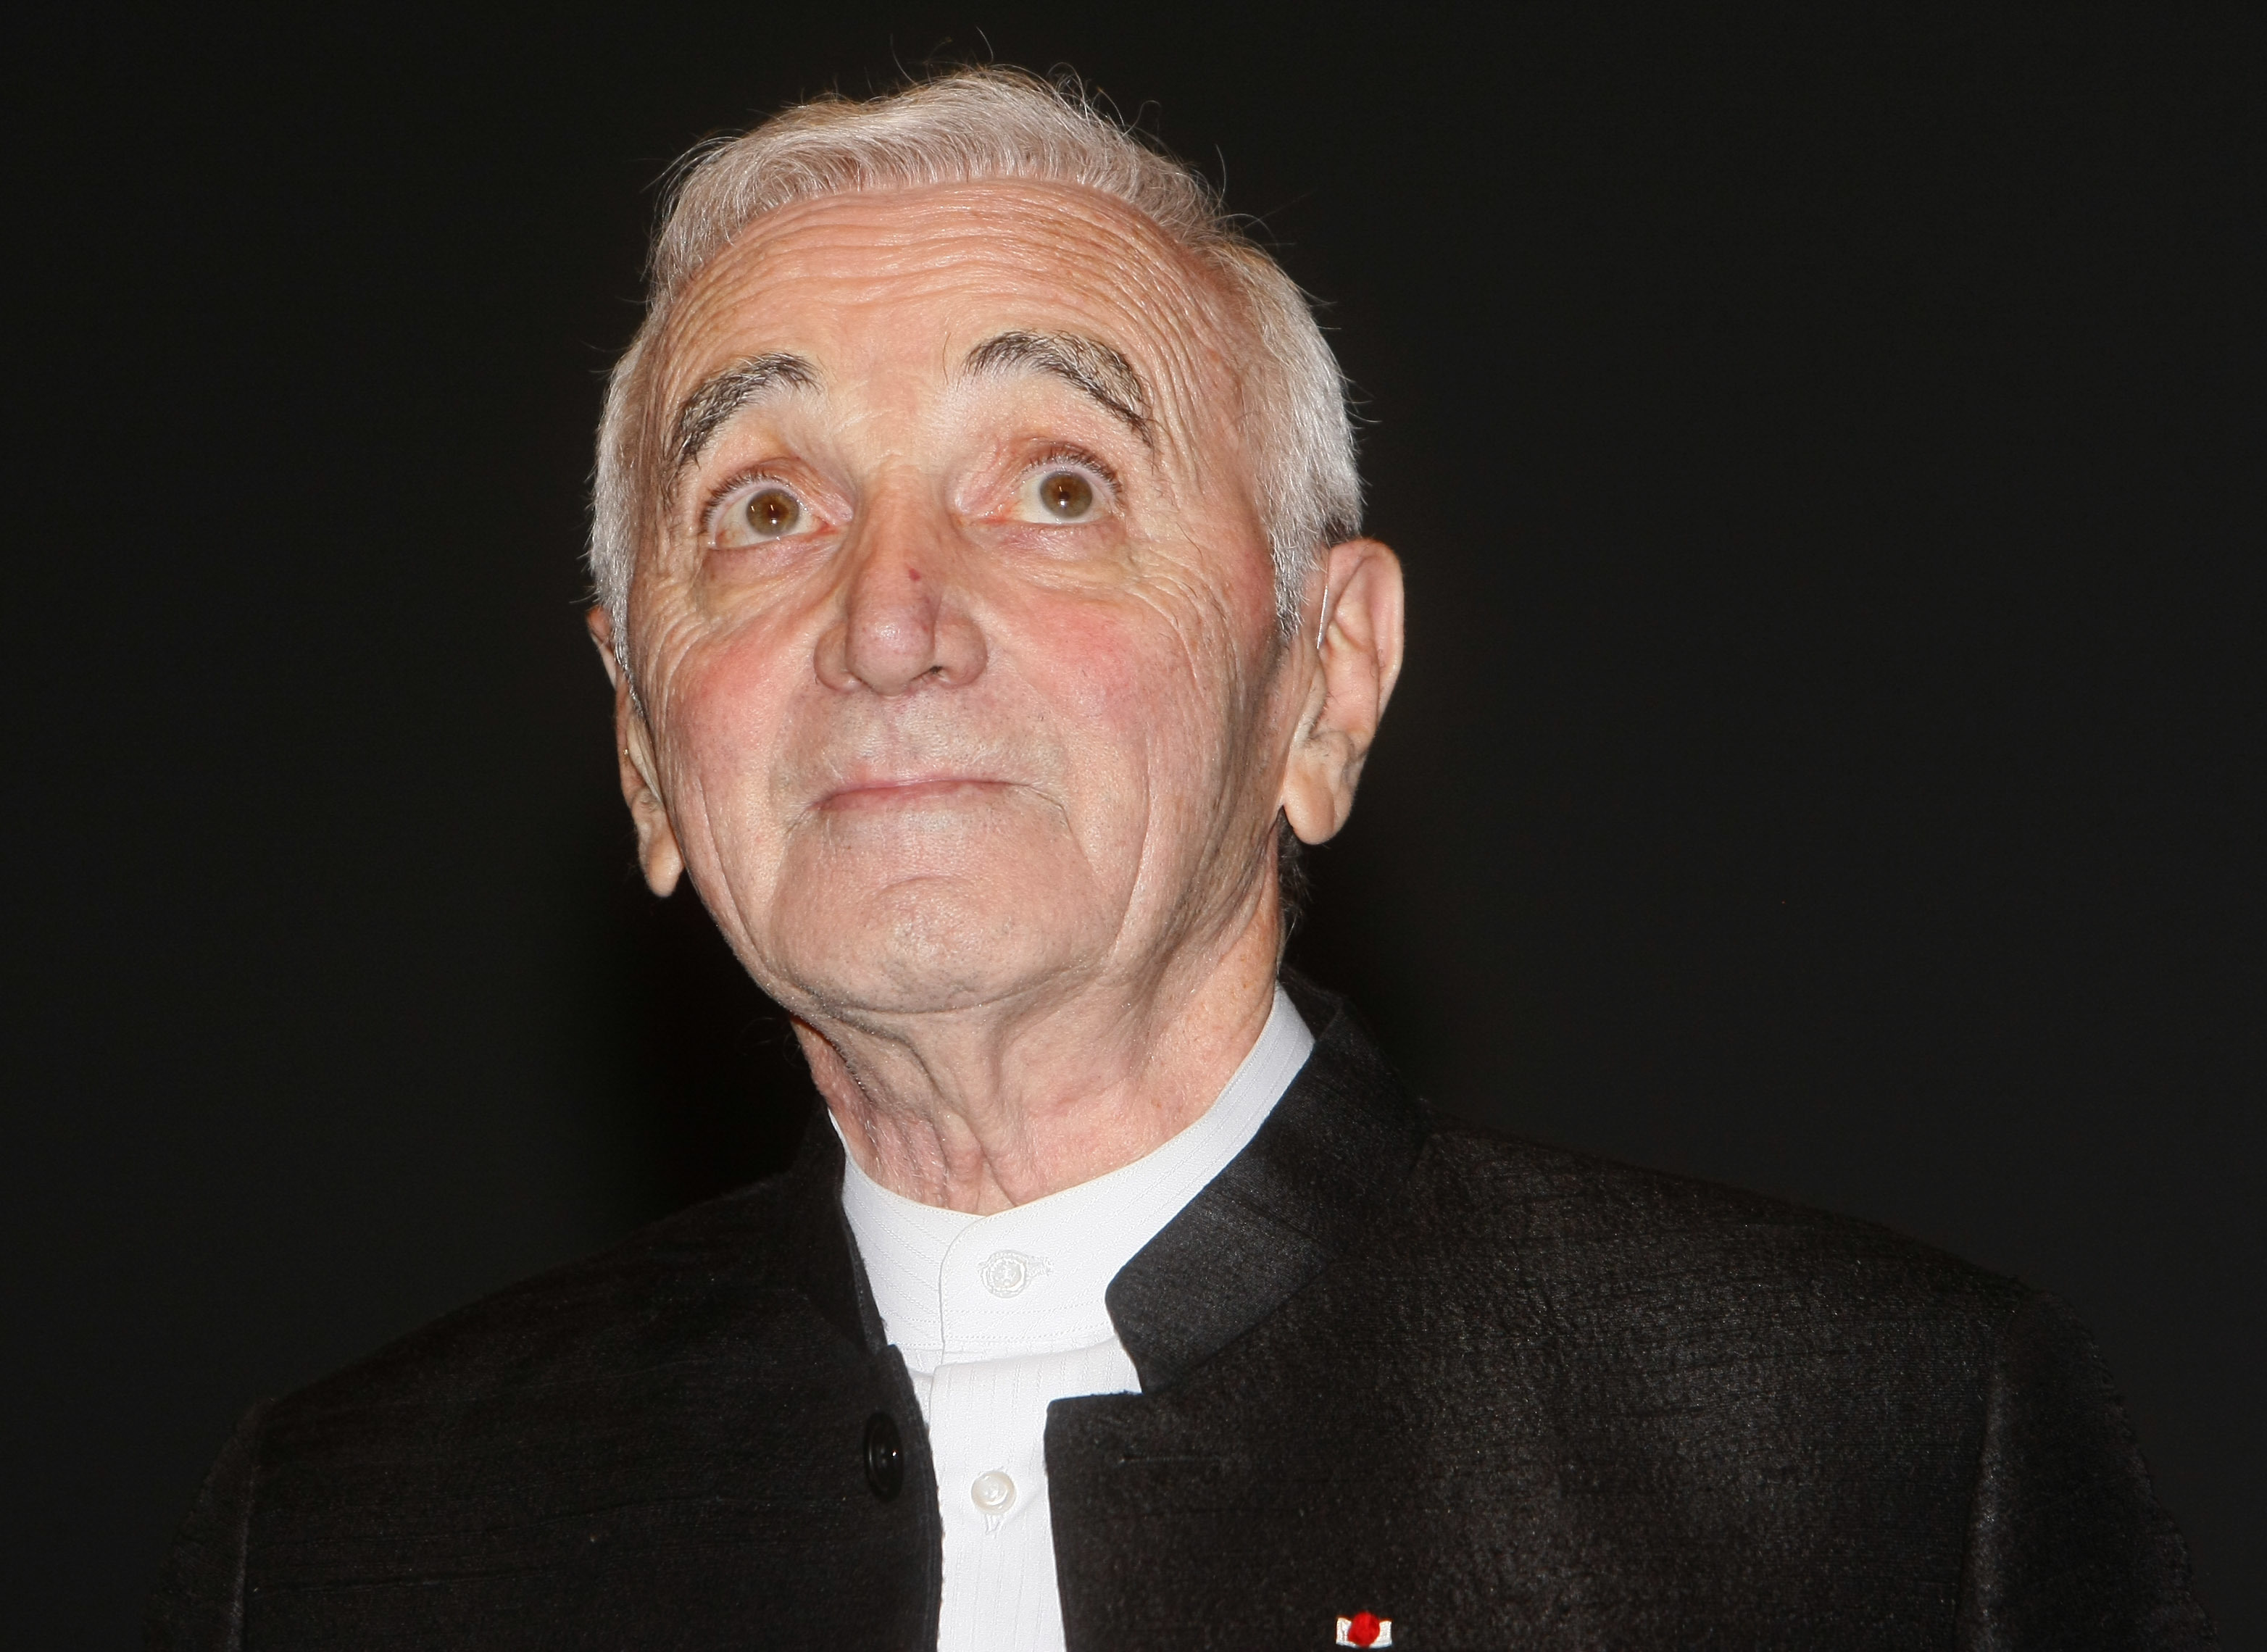 French singer and actor Charles Aznavour dies at age 94